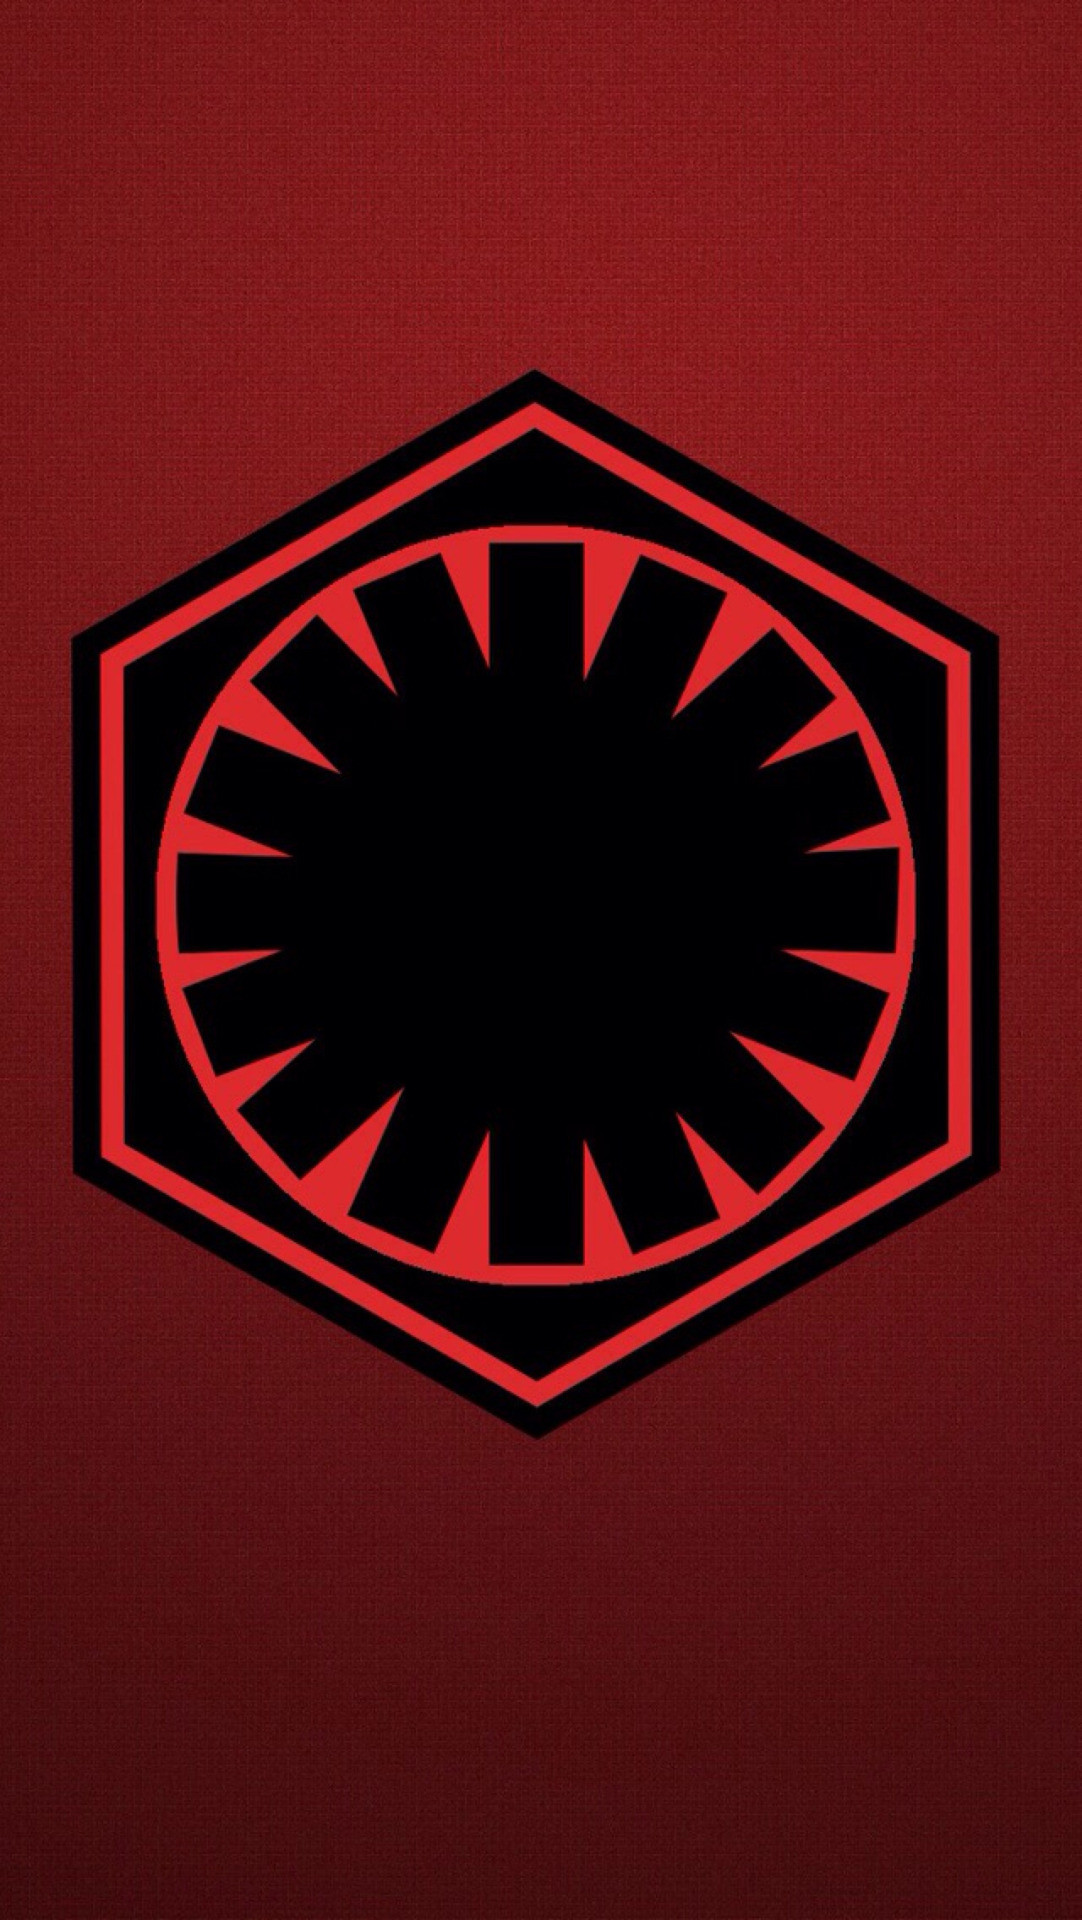 First Order iPhone wallpaper. I thought you all would enjoy! Happy